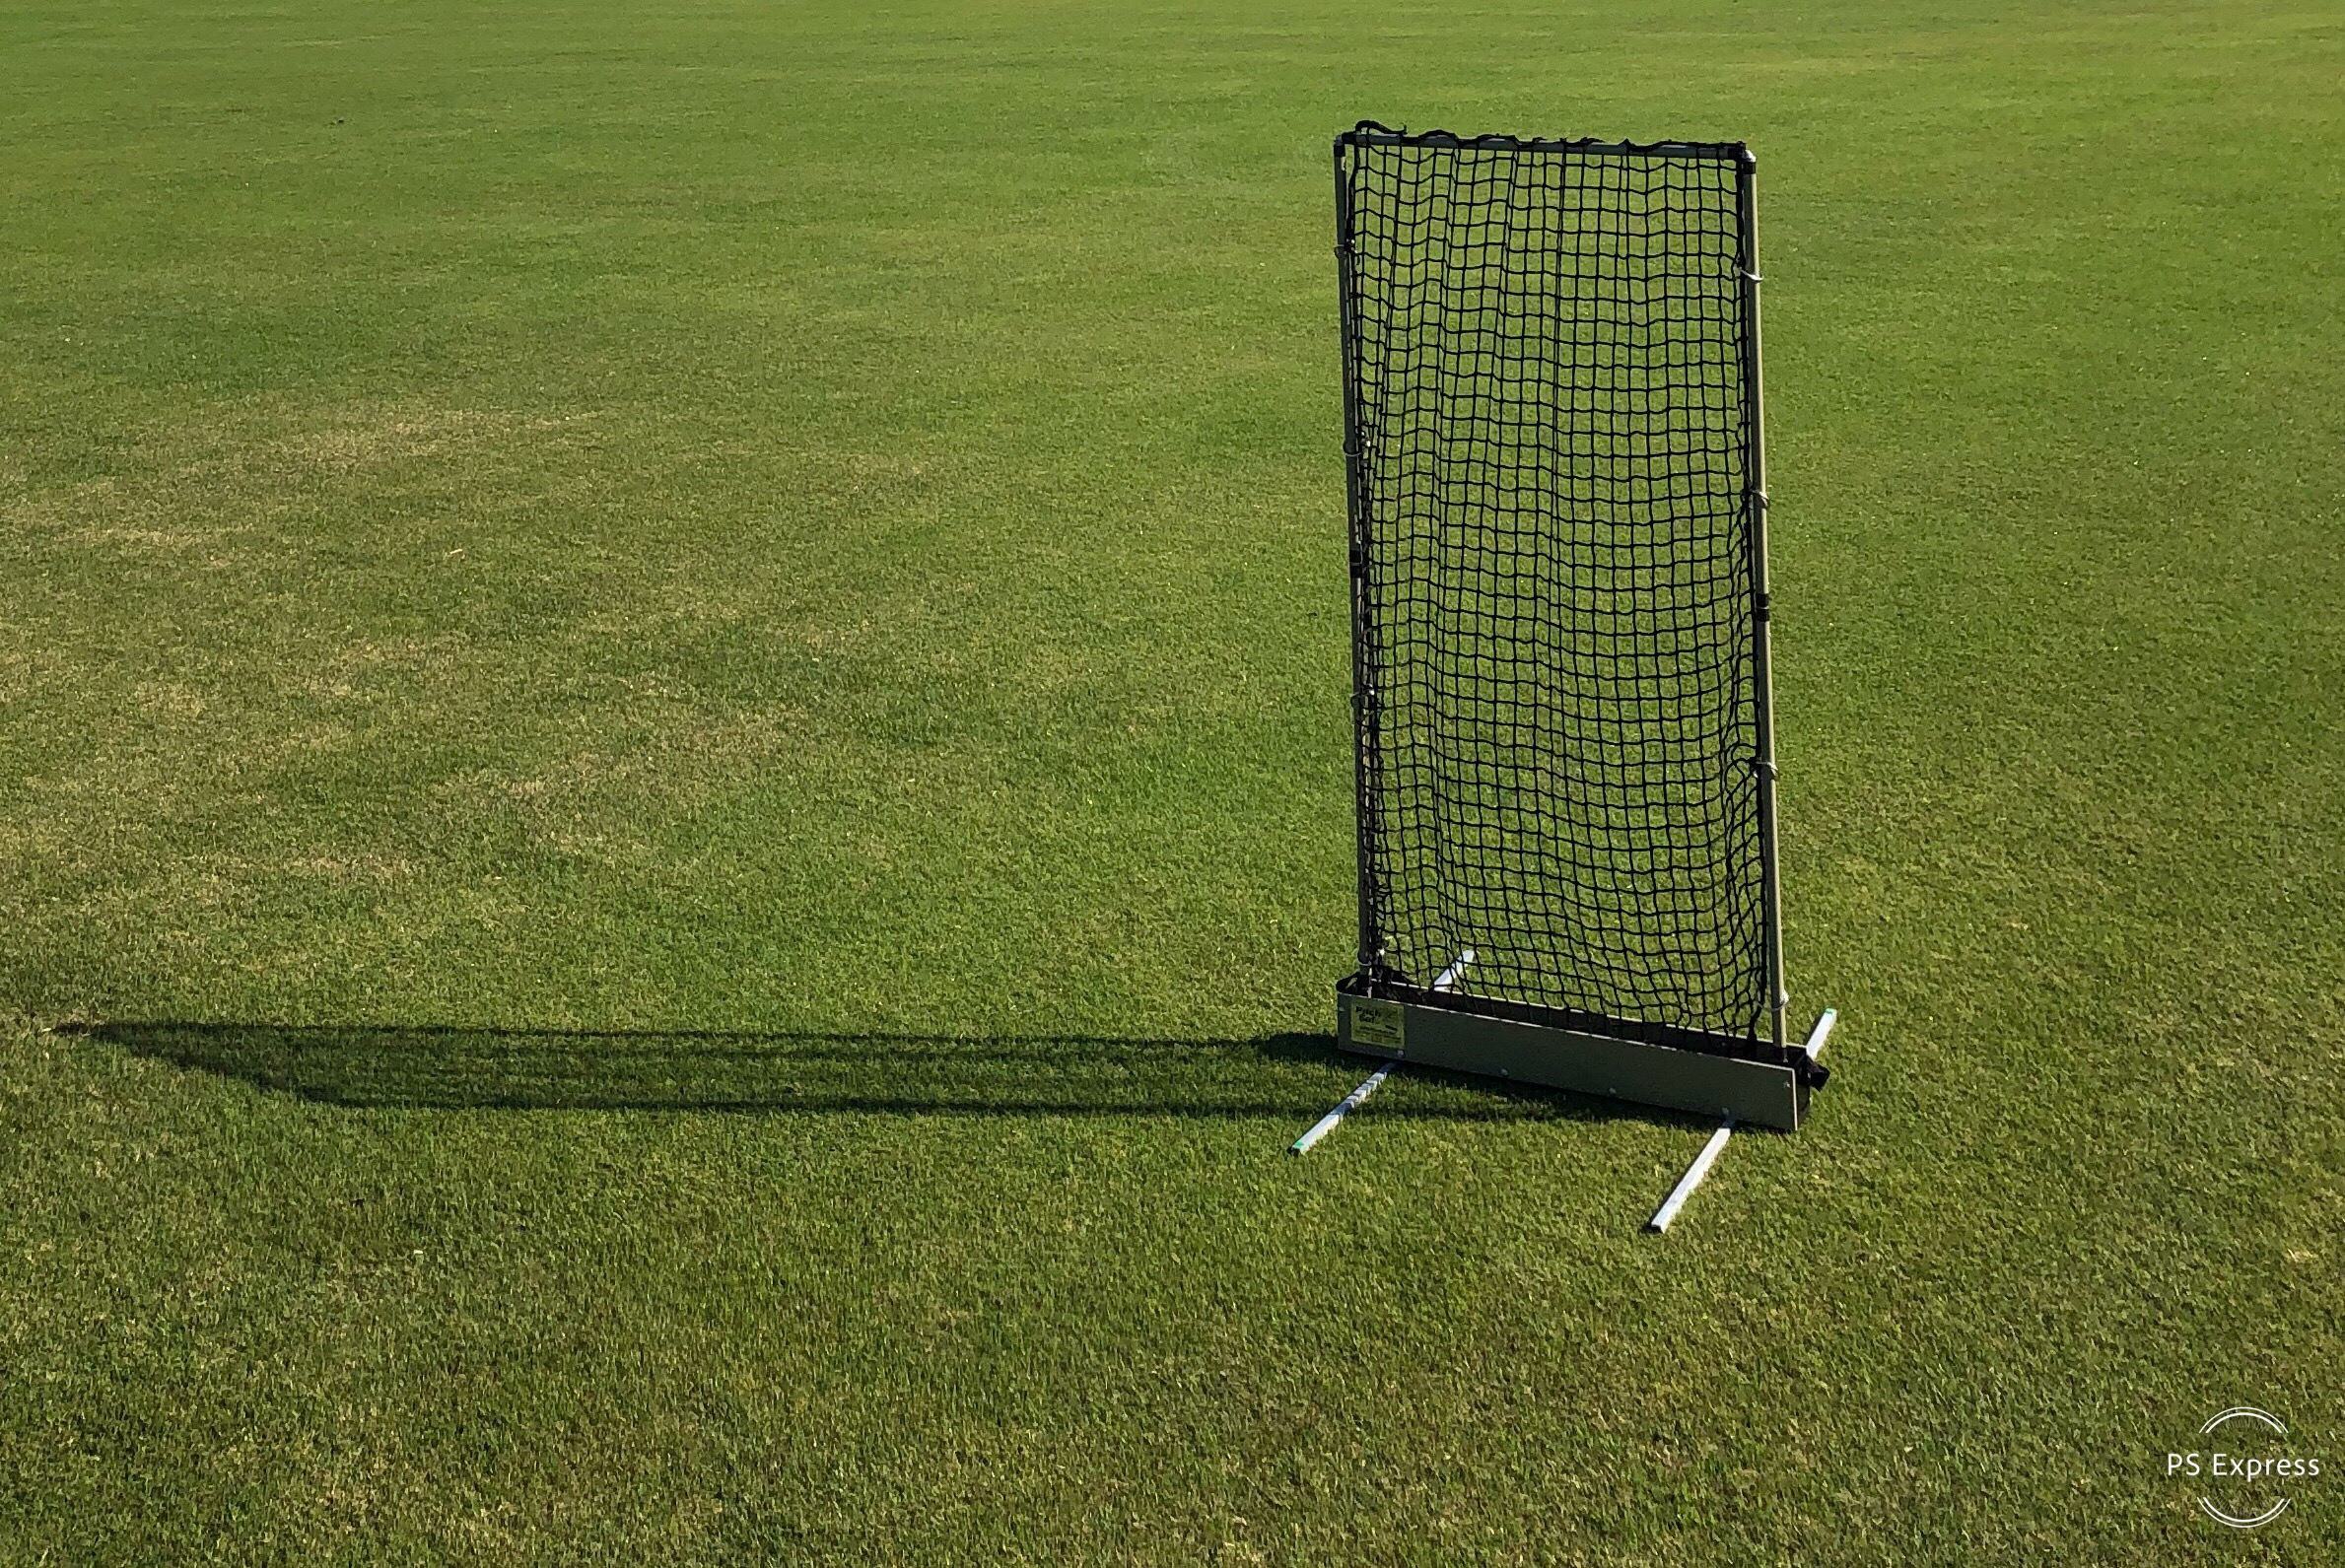 """""""I highly recommend the Pitch Safe™ pitching screen to any program at any level. We use ours at the PAC 10, Division-1 level and find them to be ..."""